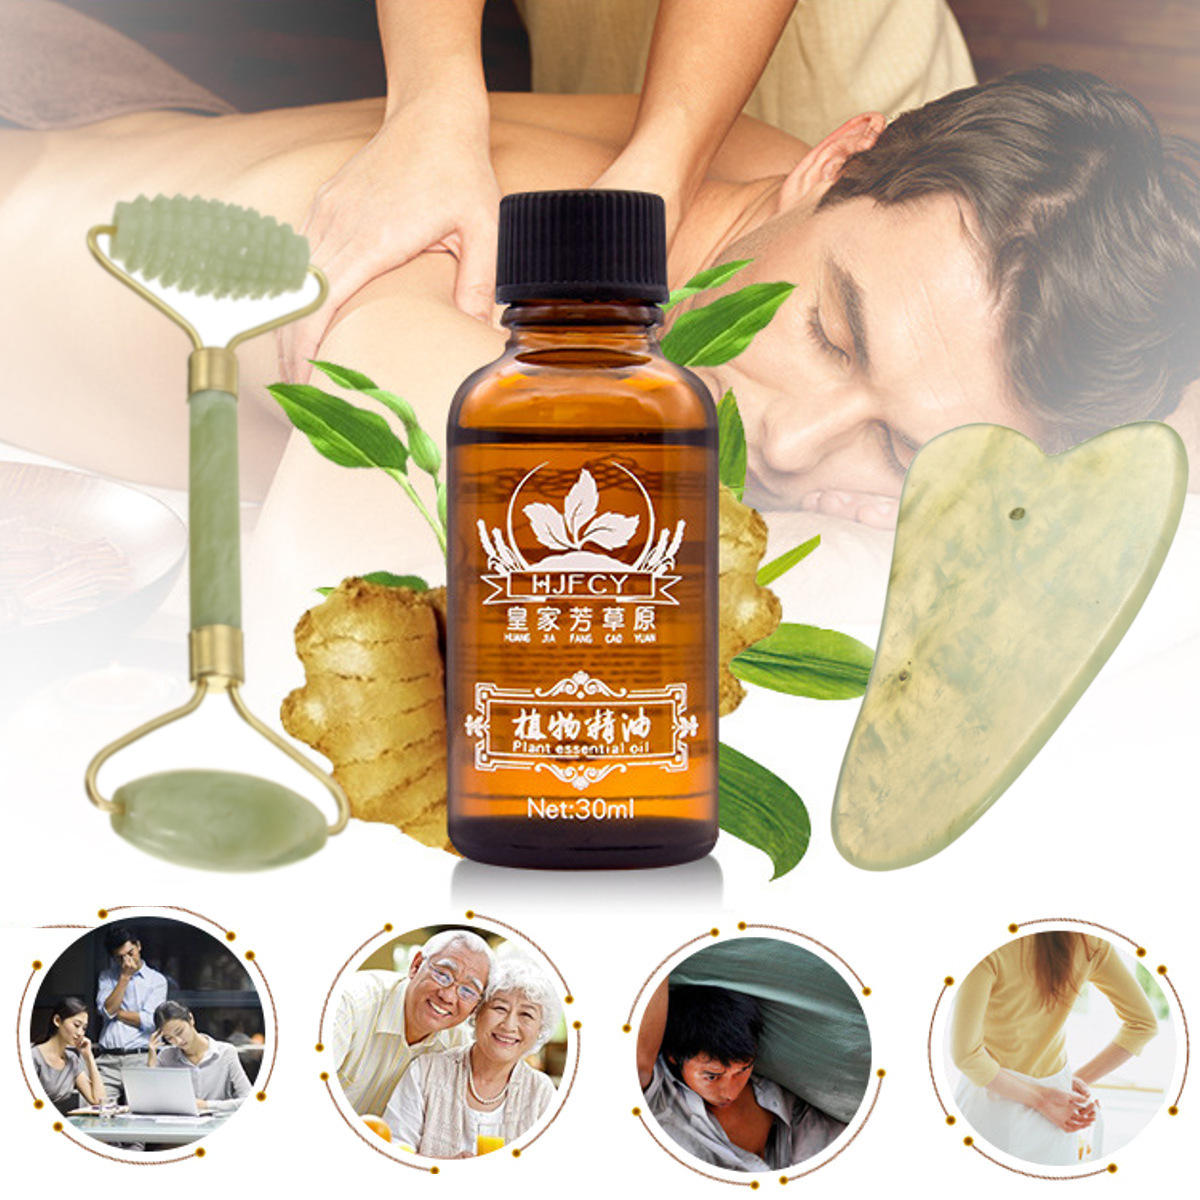 100% Natural Plant Therapy Lymphatic Drainage Ginger Essential Oil Anti Aging Body Massage